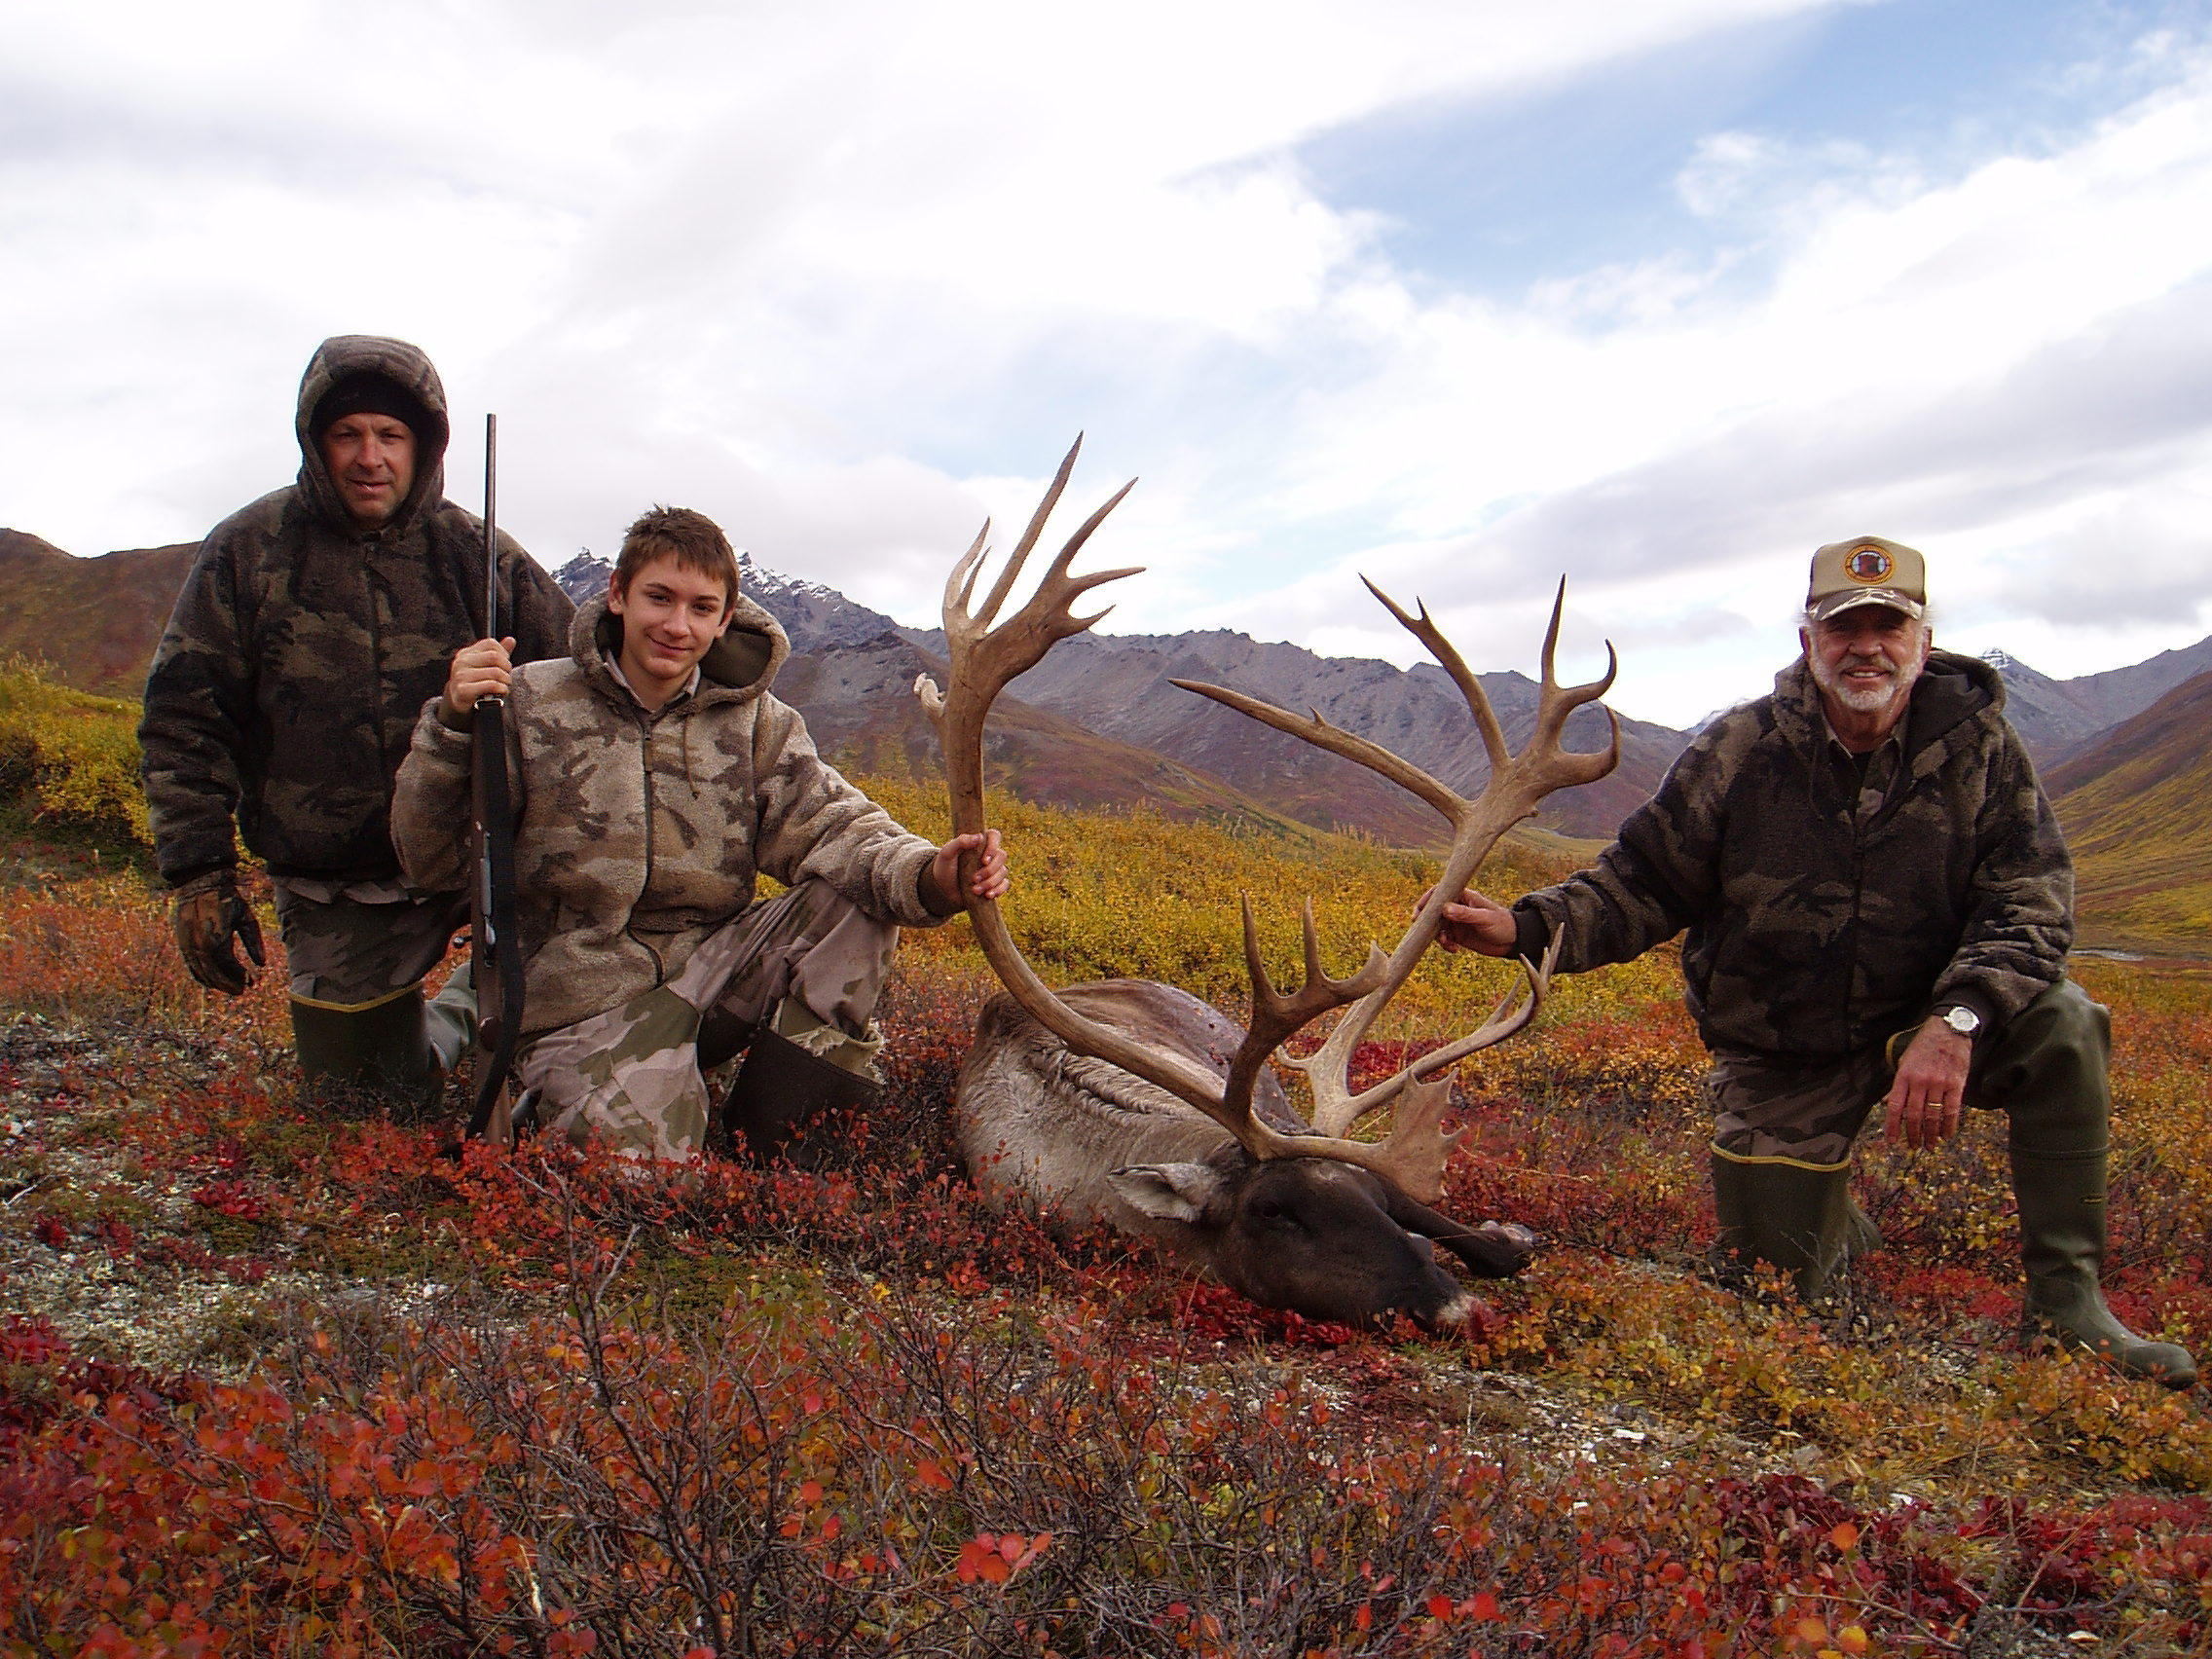 (L to R) Sagen, Nathan and me with Nathan's impressive caribou.